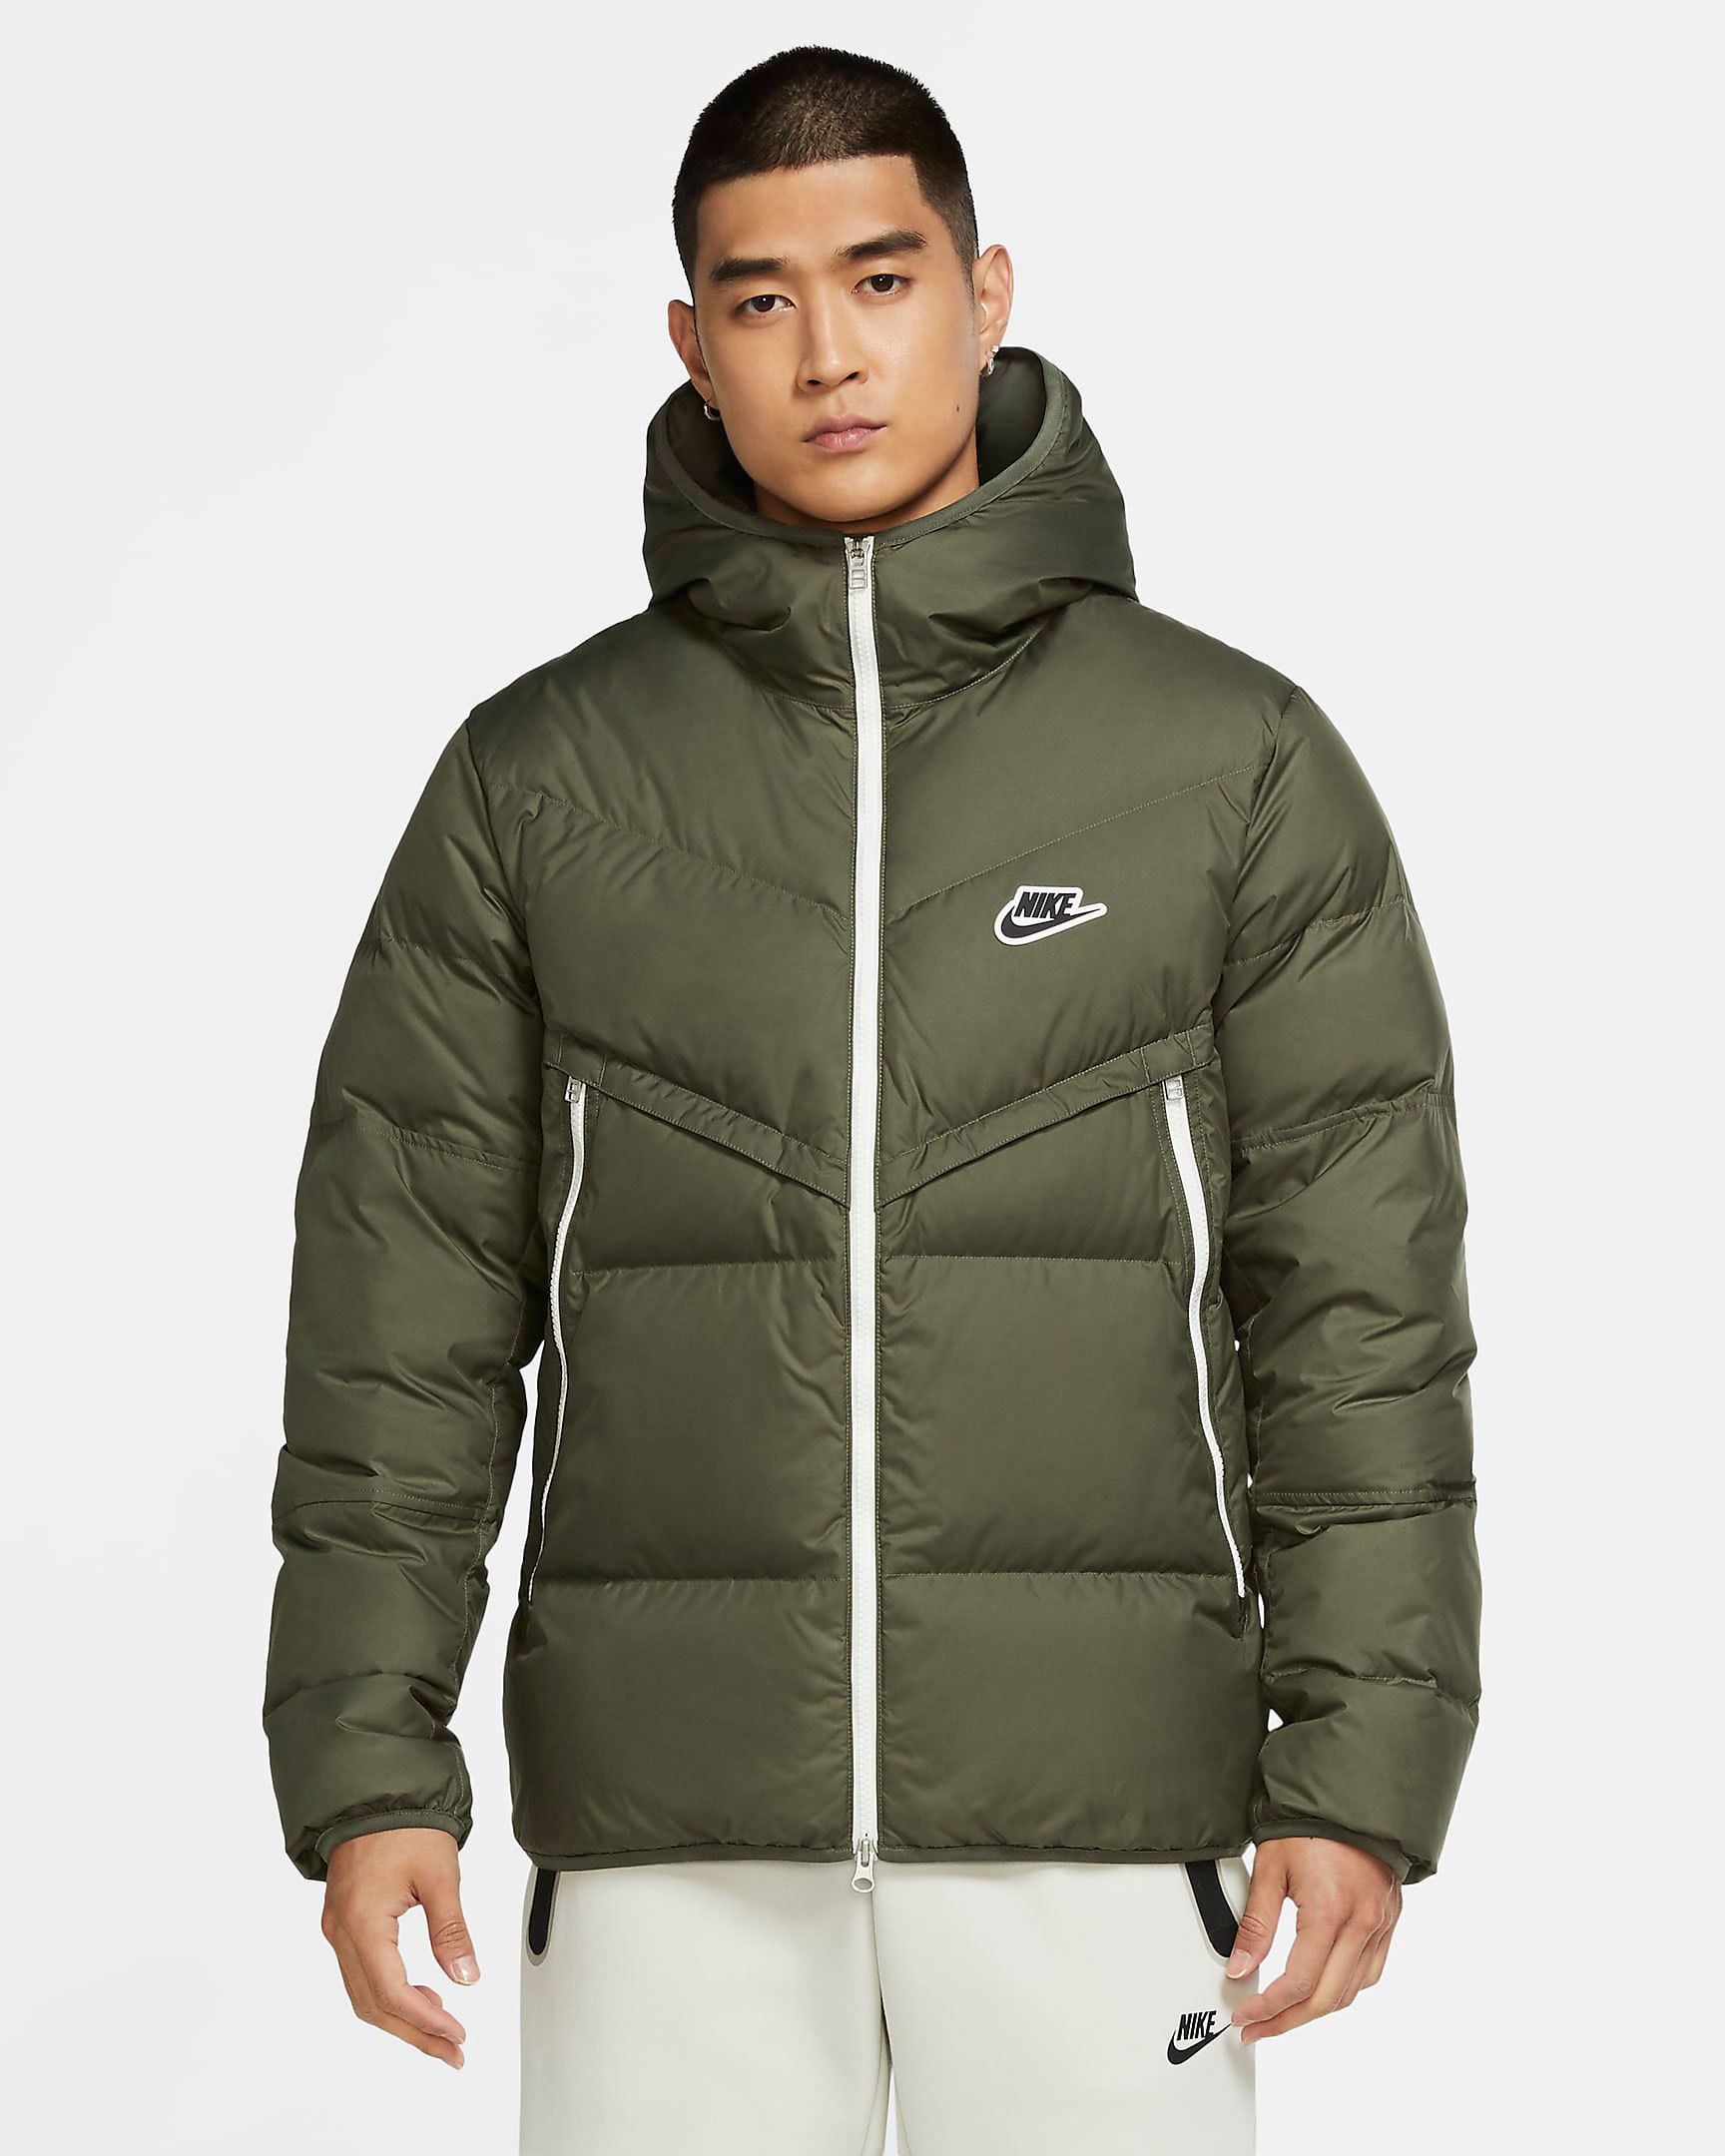 nike-windrunner-winter-jacket-twilight-marsh-olive-green